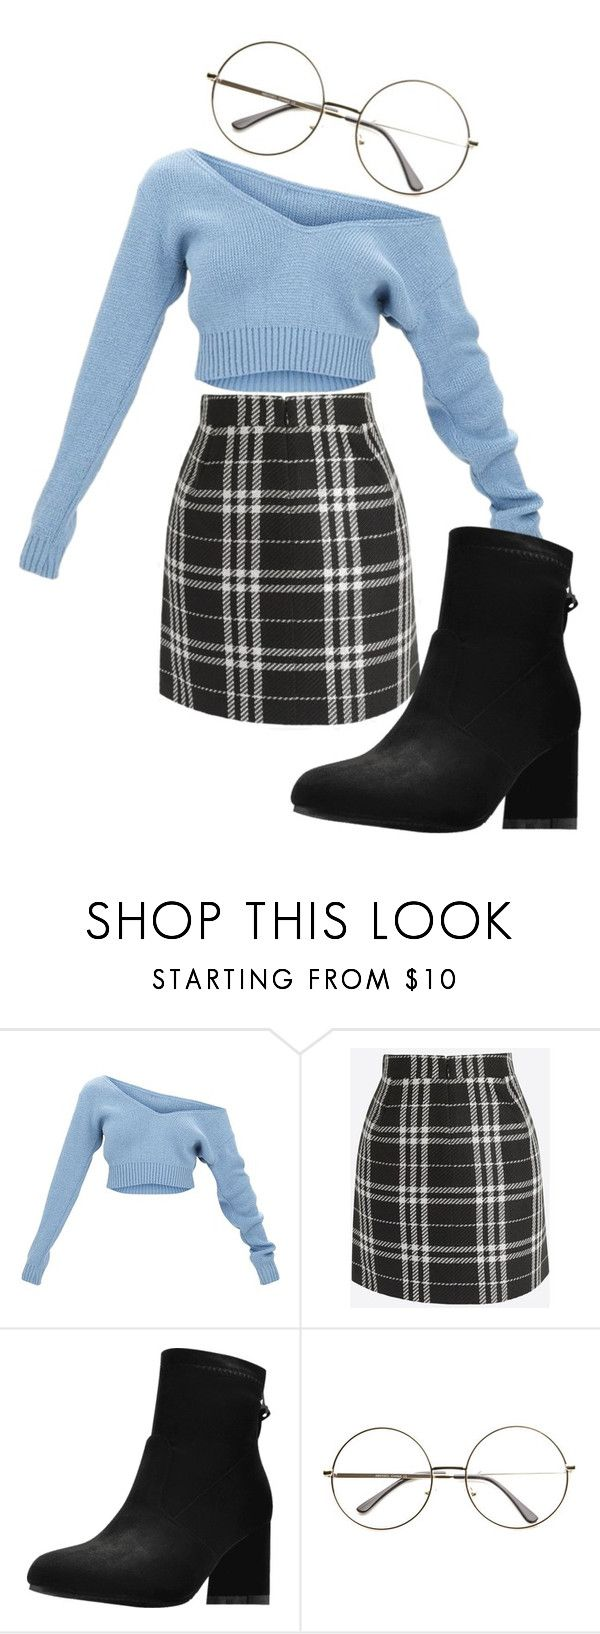 """School vibes"" by fashionxx1 ❤ liked on Polyvore"